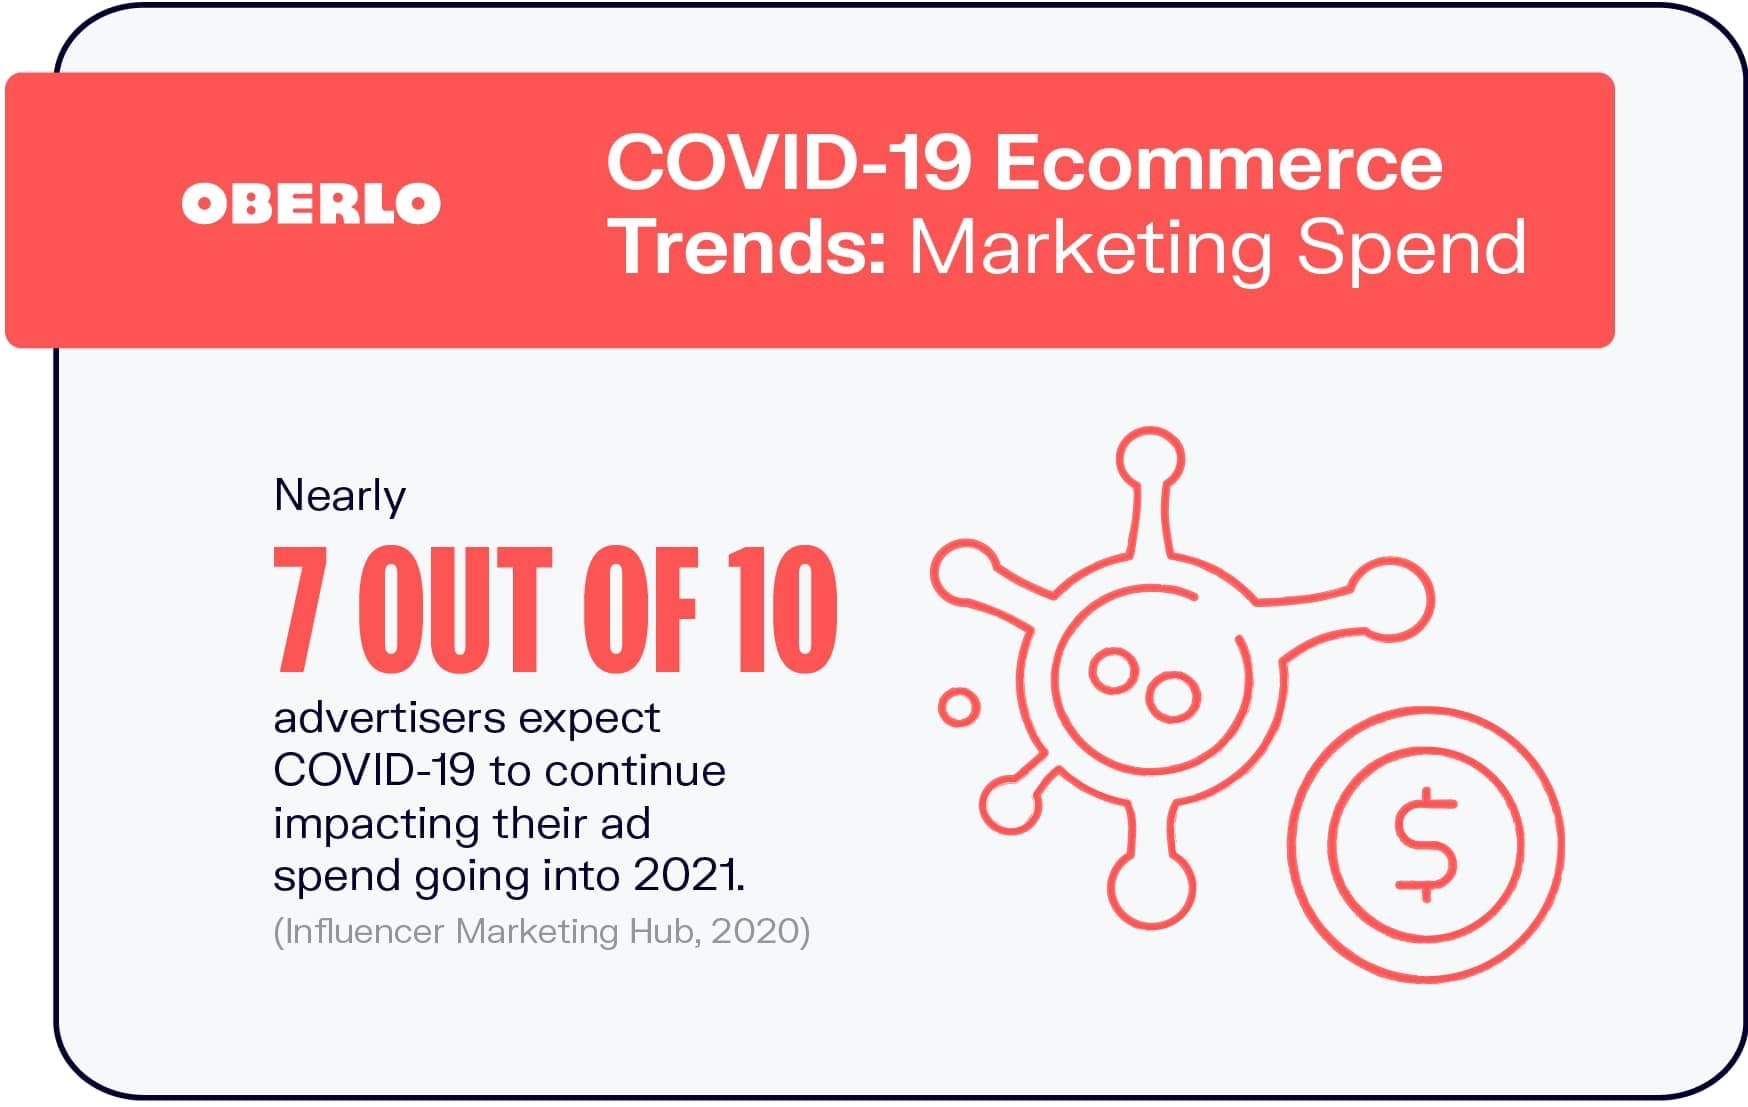 COVID-19 Ecommerce Trends: Marketing Spend